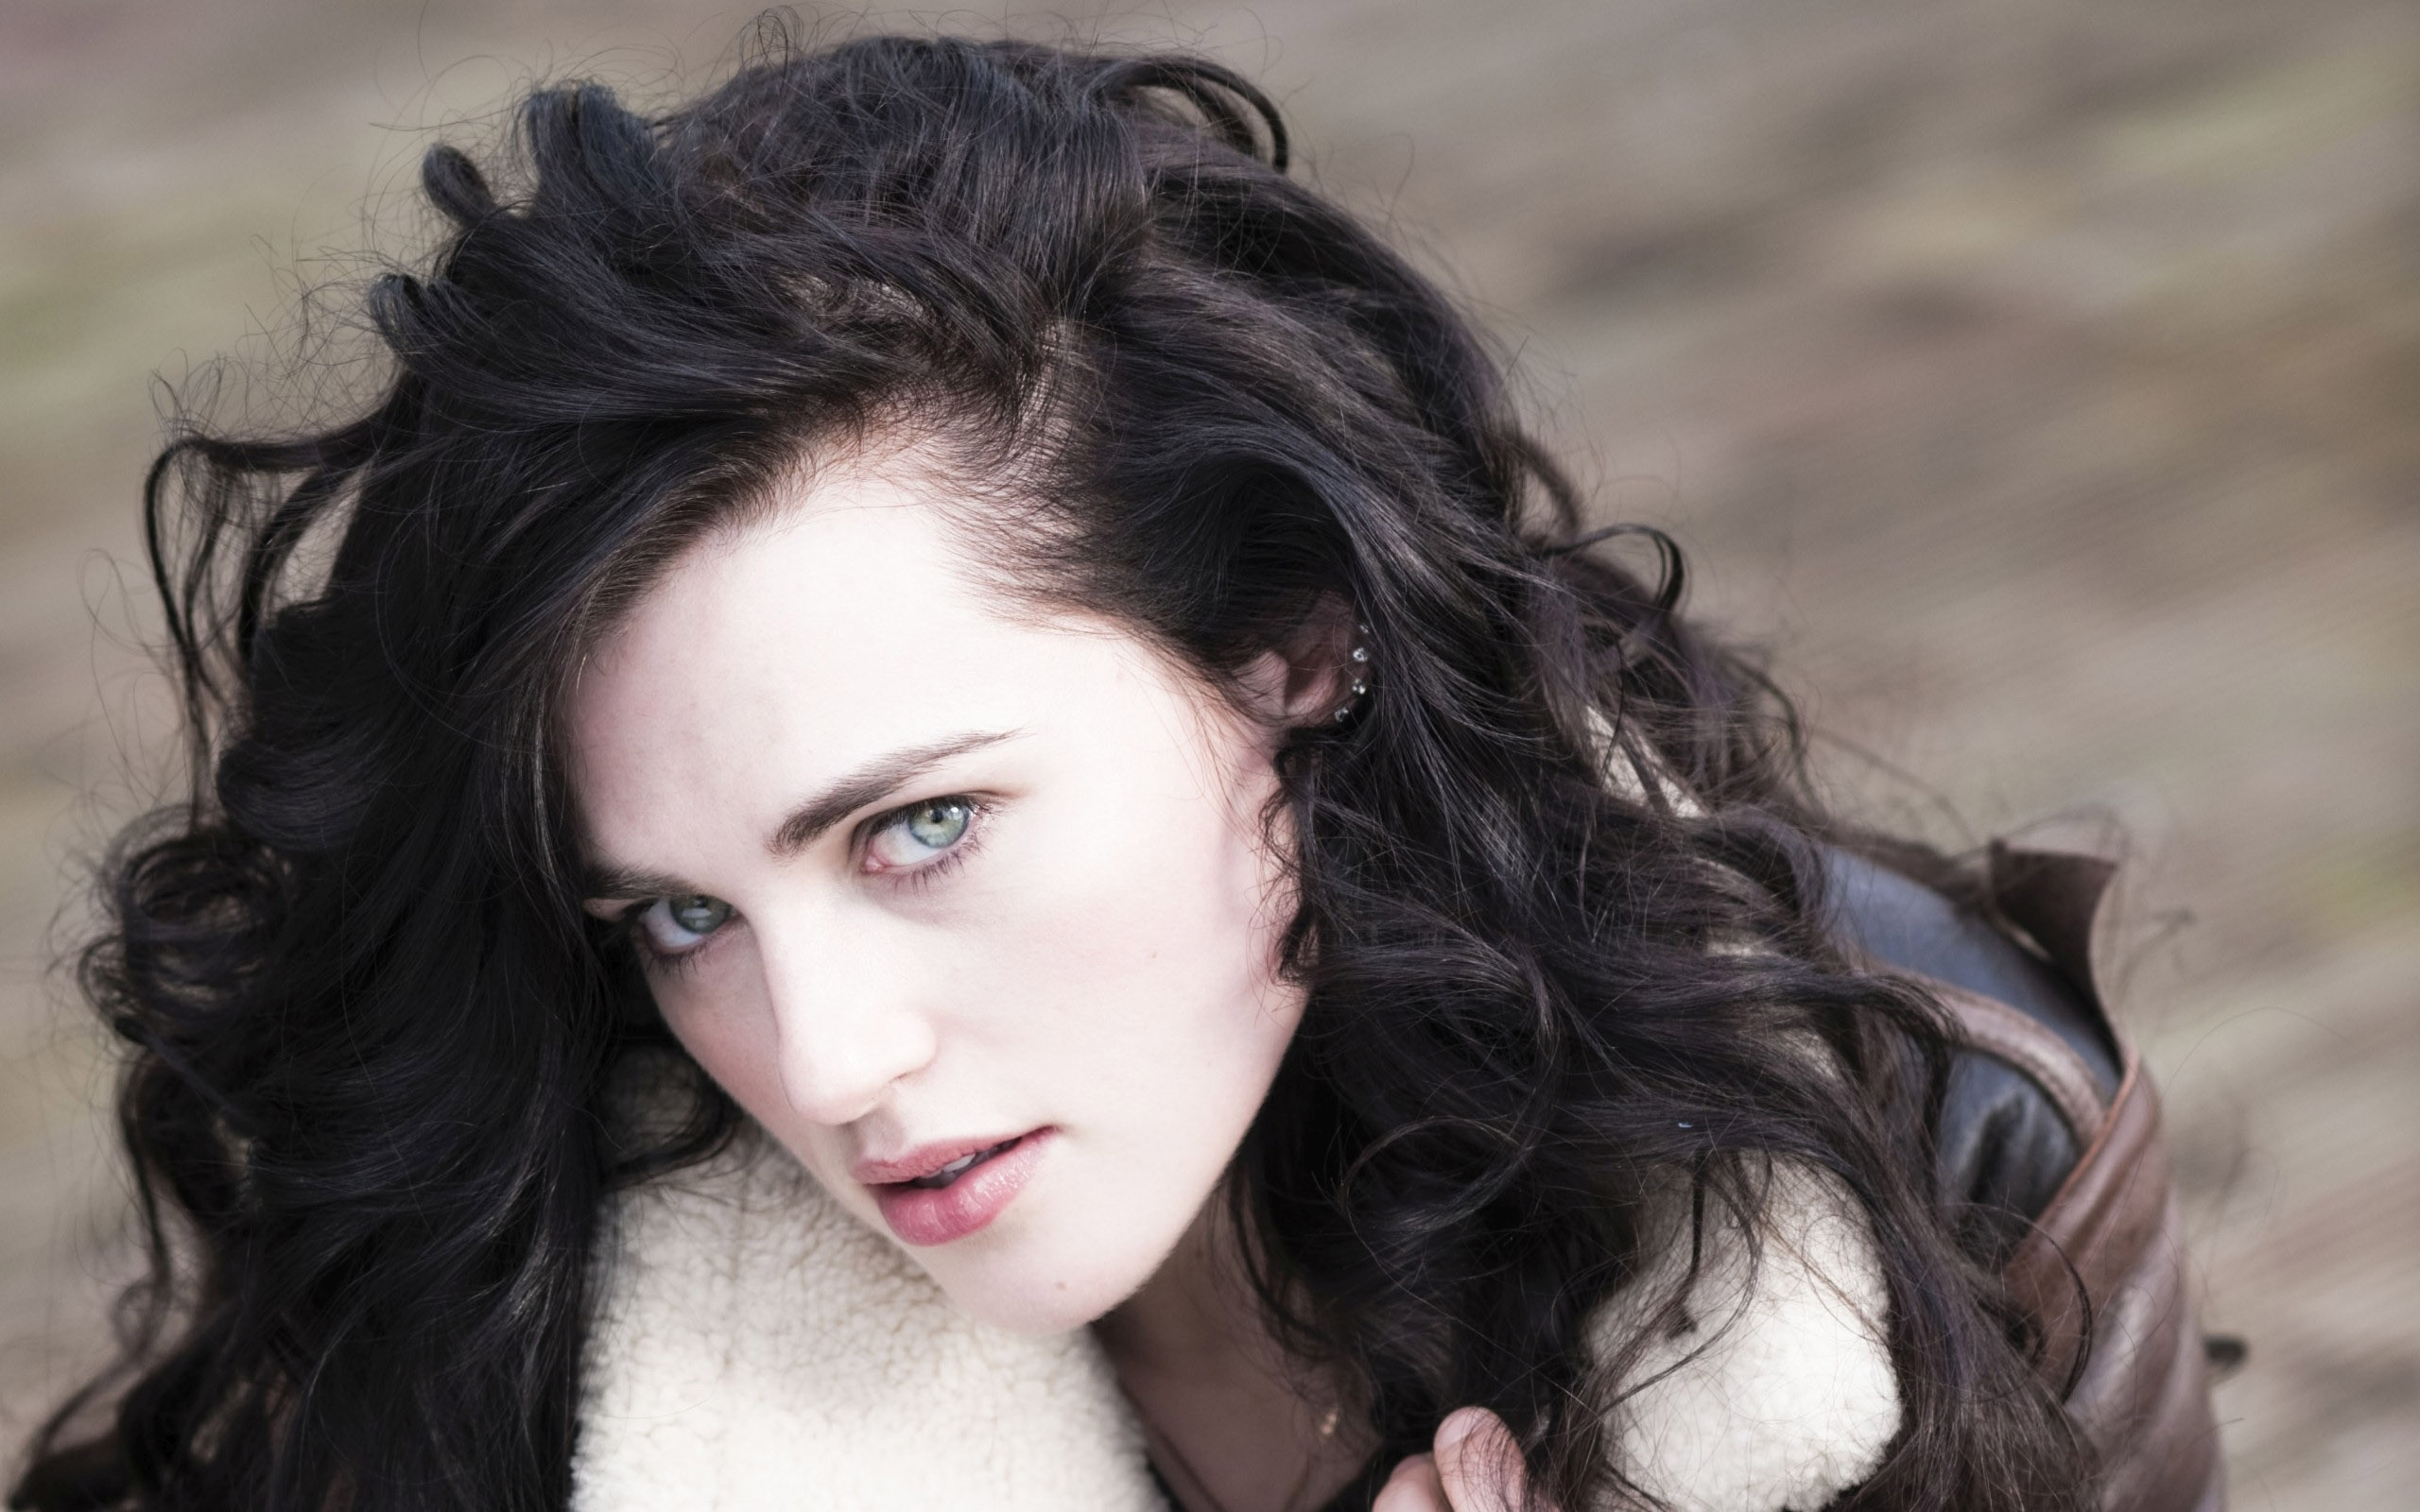 katie mcgrath celebrity wallpaper background 60223